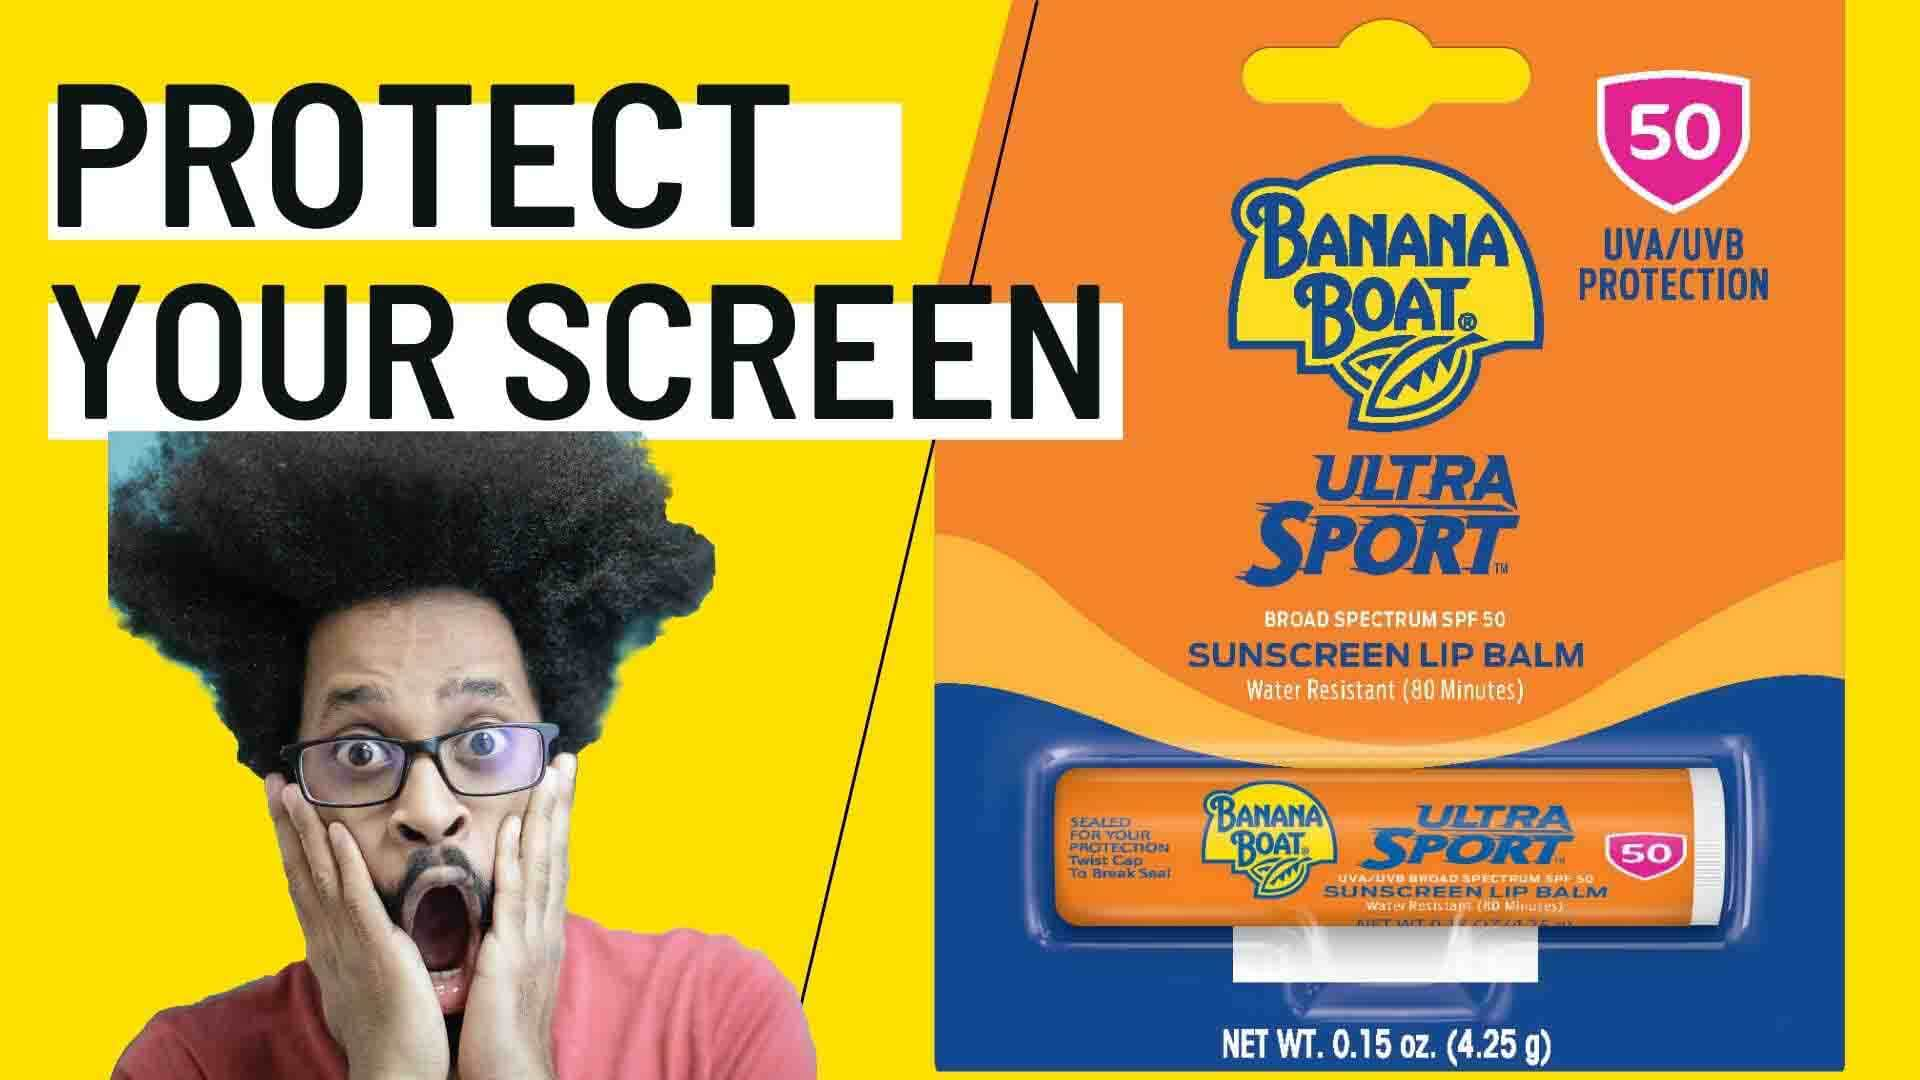 Banana boat sport spf 50 review with Details